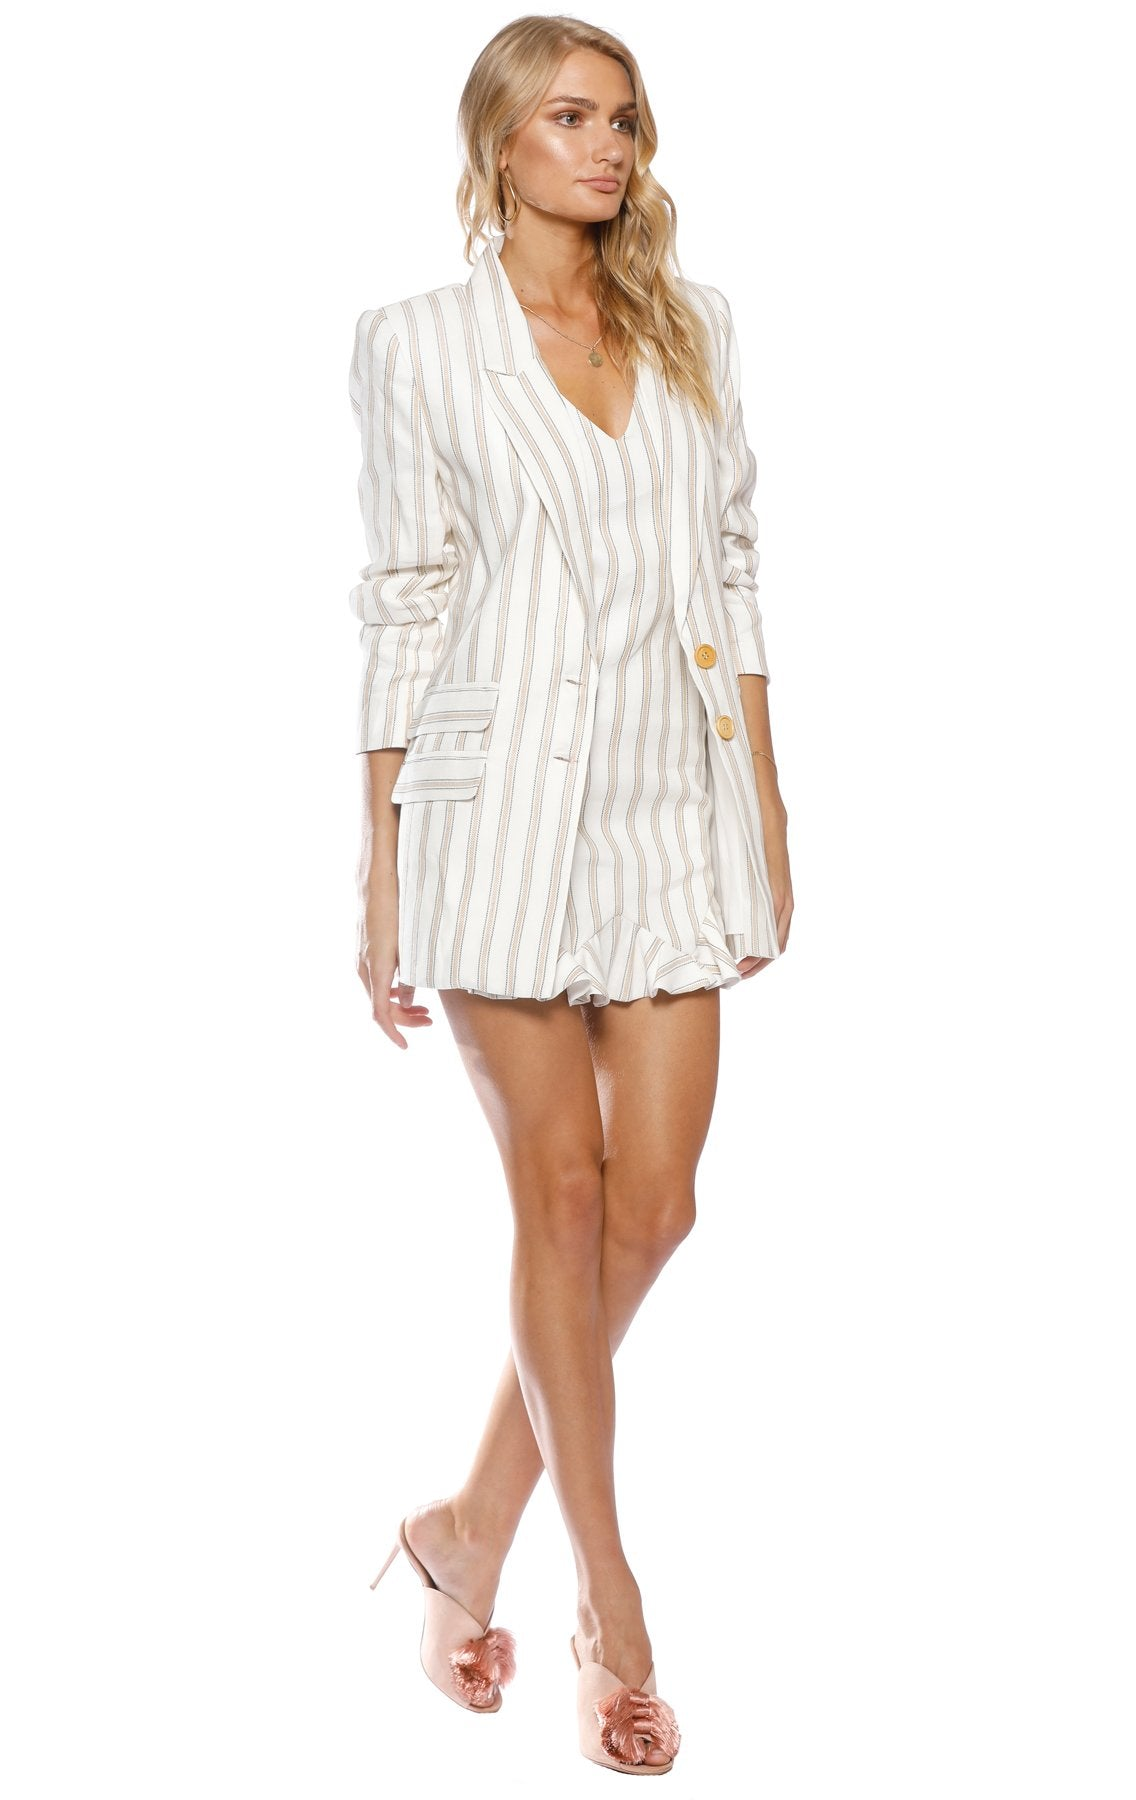 Pasduchas Ribbon Stripe Blazer - Stevie May, The East Order, Talulah, Pasduchas, Everly Collective